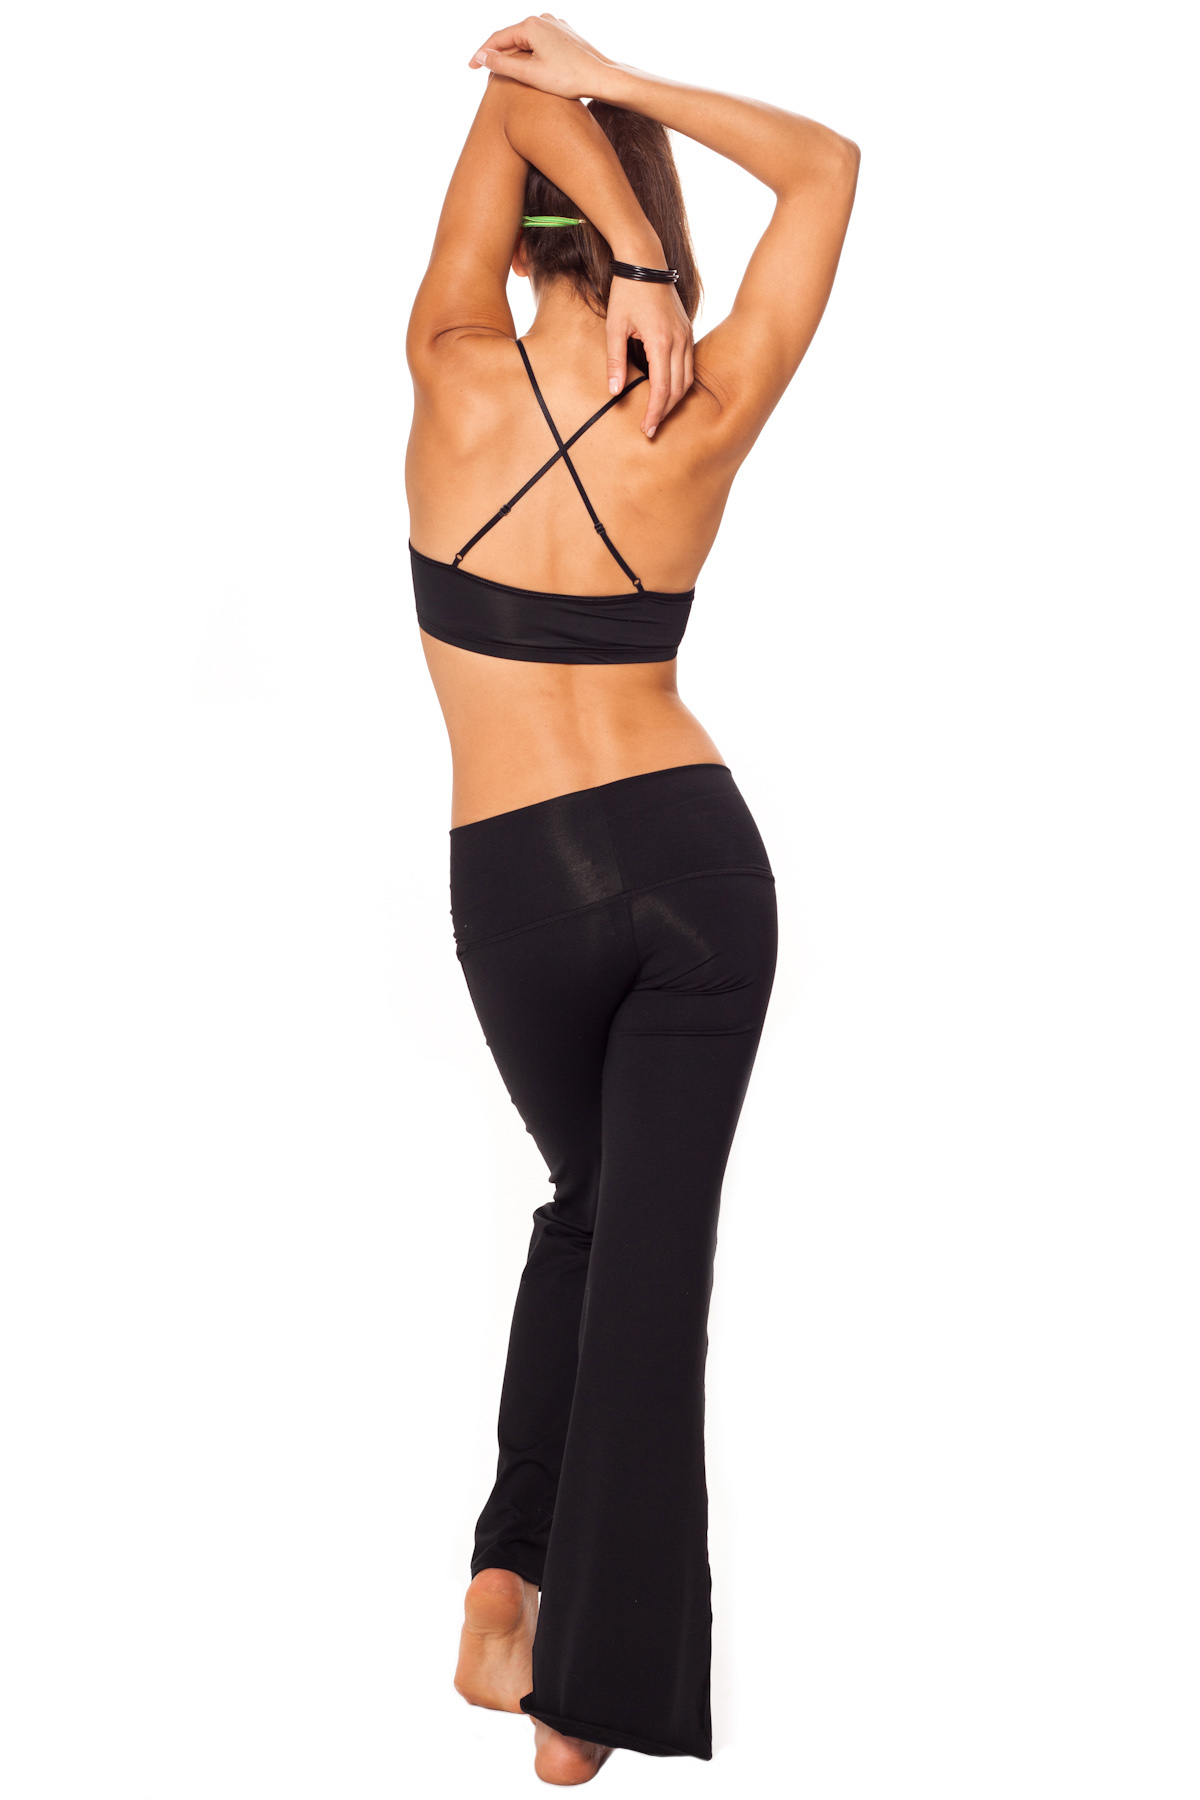 Teeki Yoga Pants Dreamer Pant Bell Bottom Yoga Club